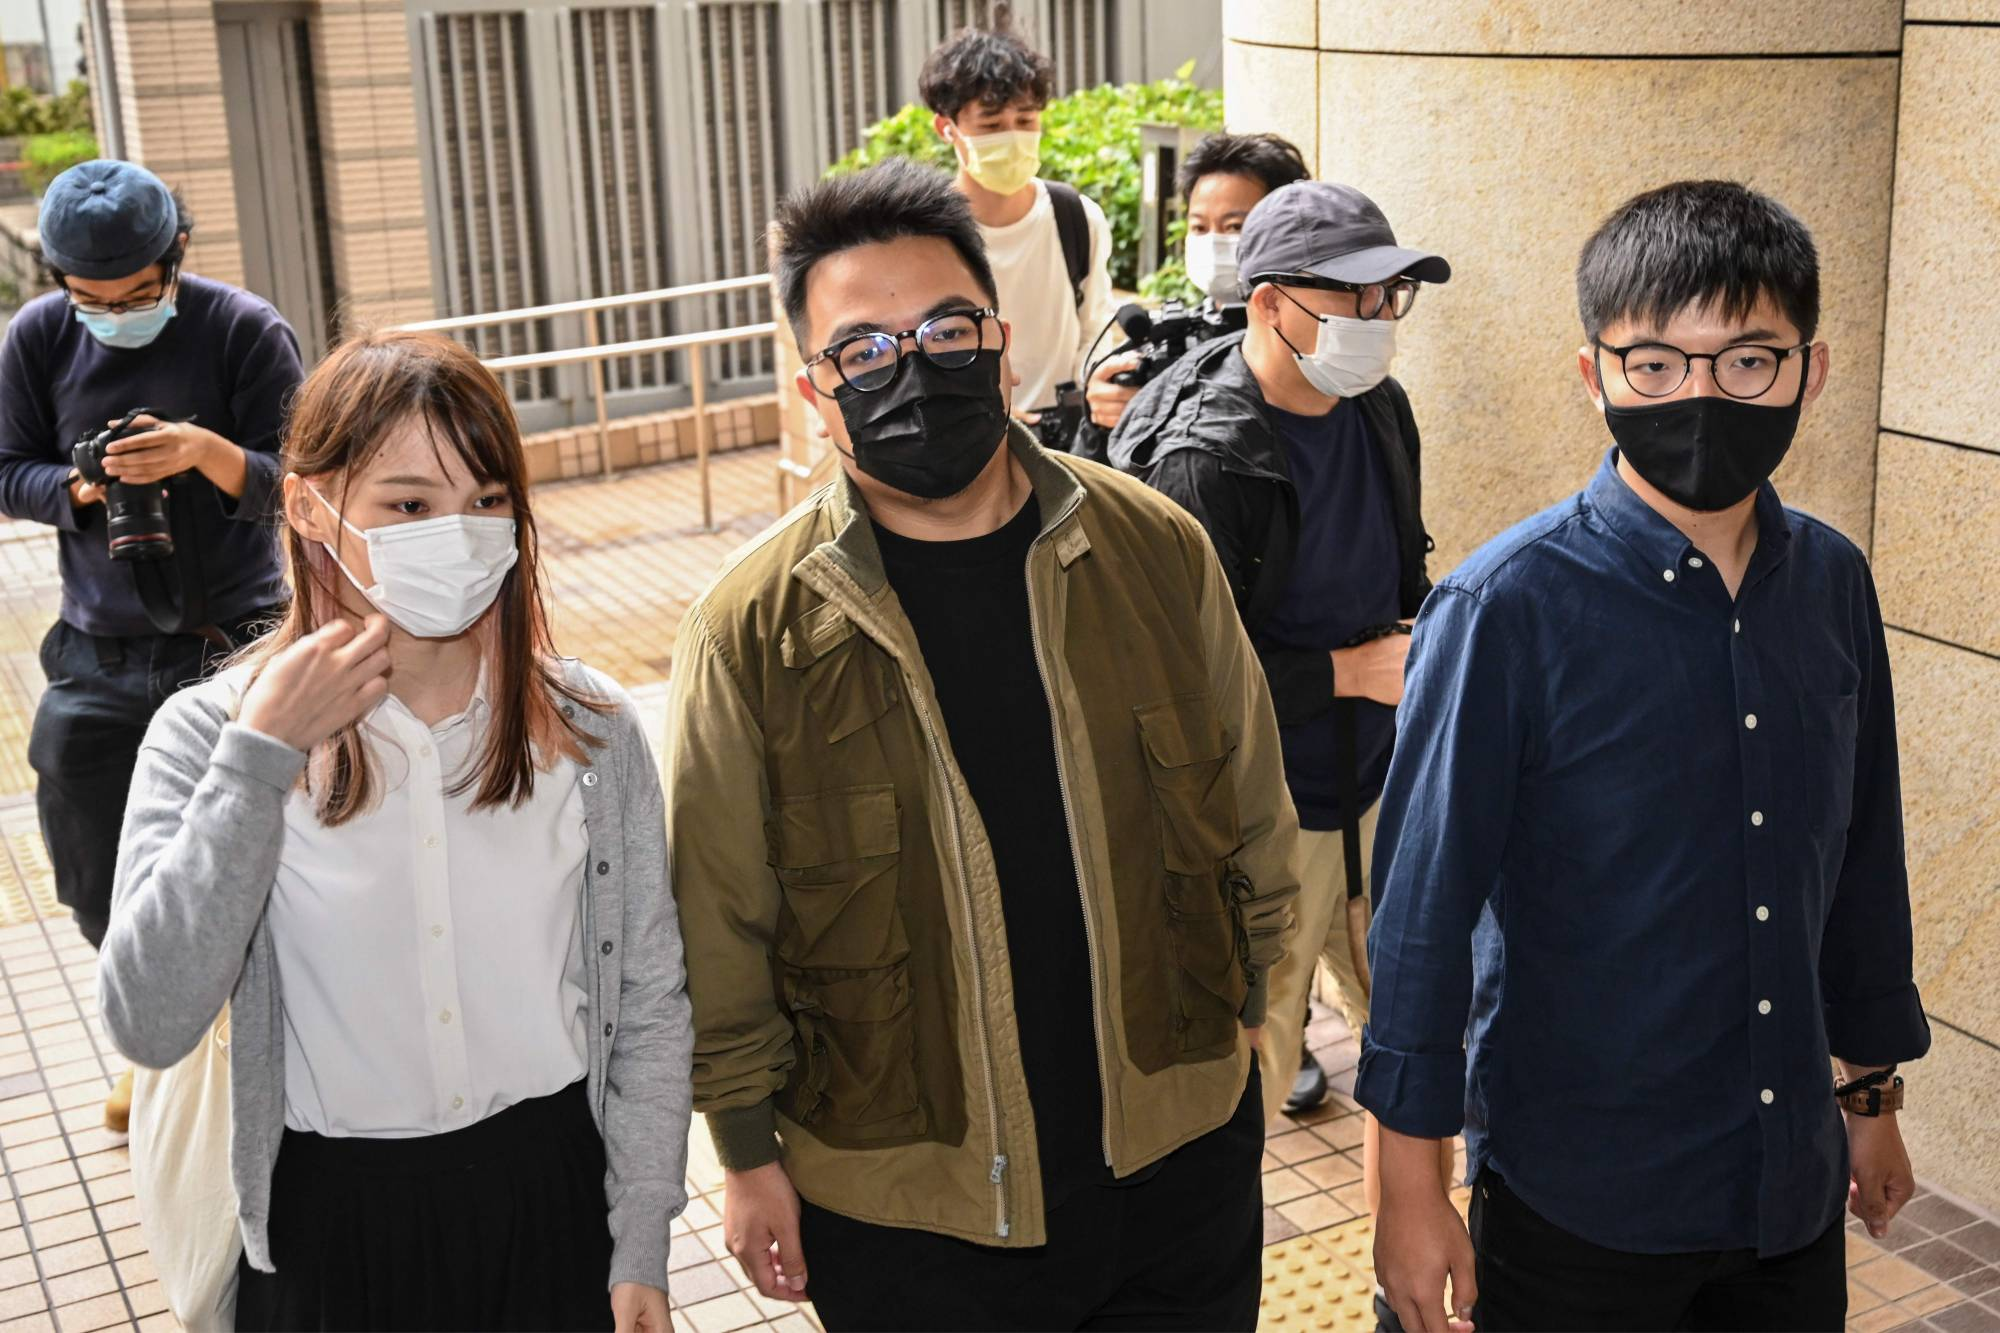 From left: Pro-democracy activists Agnes Chow, Ivan Lam and Joshua Wong arrive for their trial at West Kowloon Magistrates Court in Hong Kong on Monday.  | AFP-JIJI